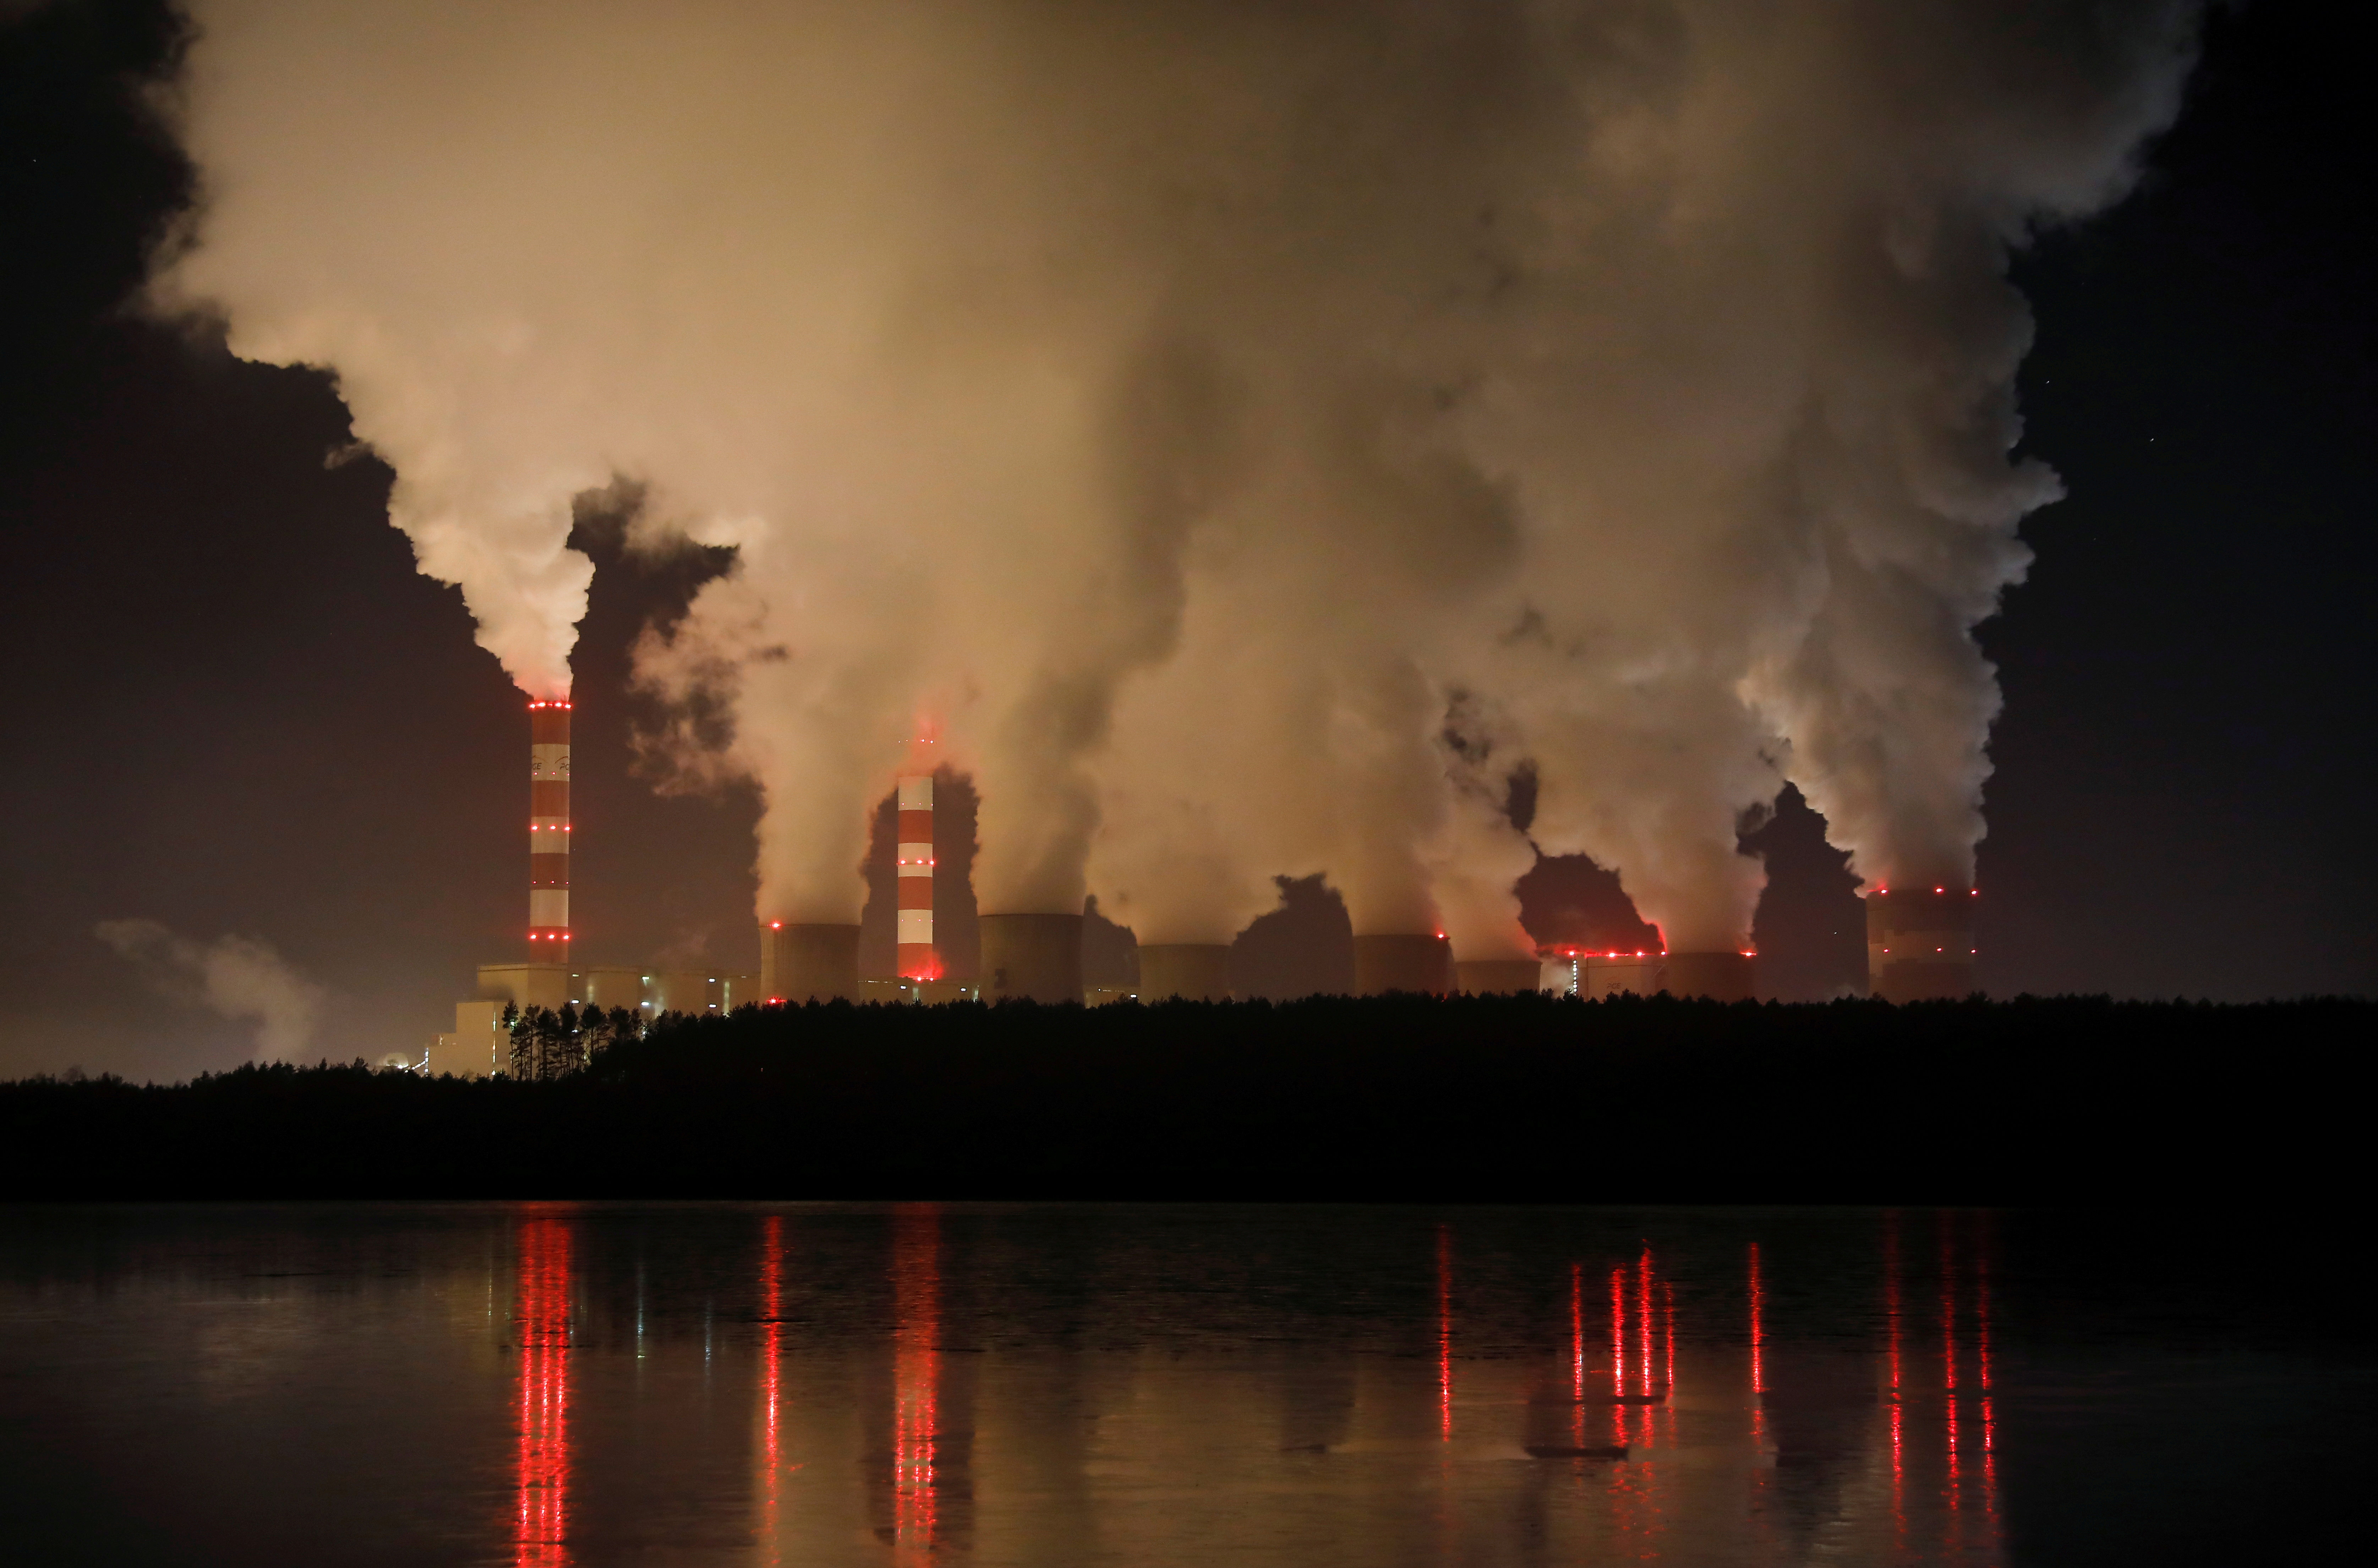 Smoke and steam billows from Belchatow Power Station, Europe's largest coal-fired power plant operated by PGE Group, at night near Belchatow, Poland December 5, 2018. REUTERS/Kacper Pempel/File Photo